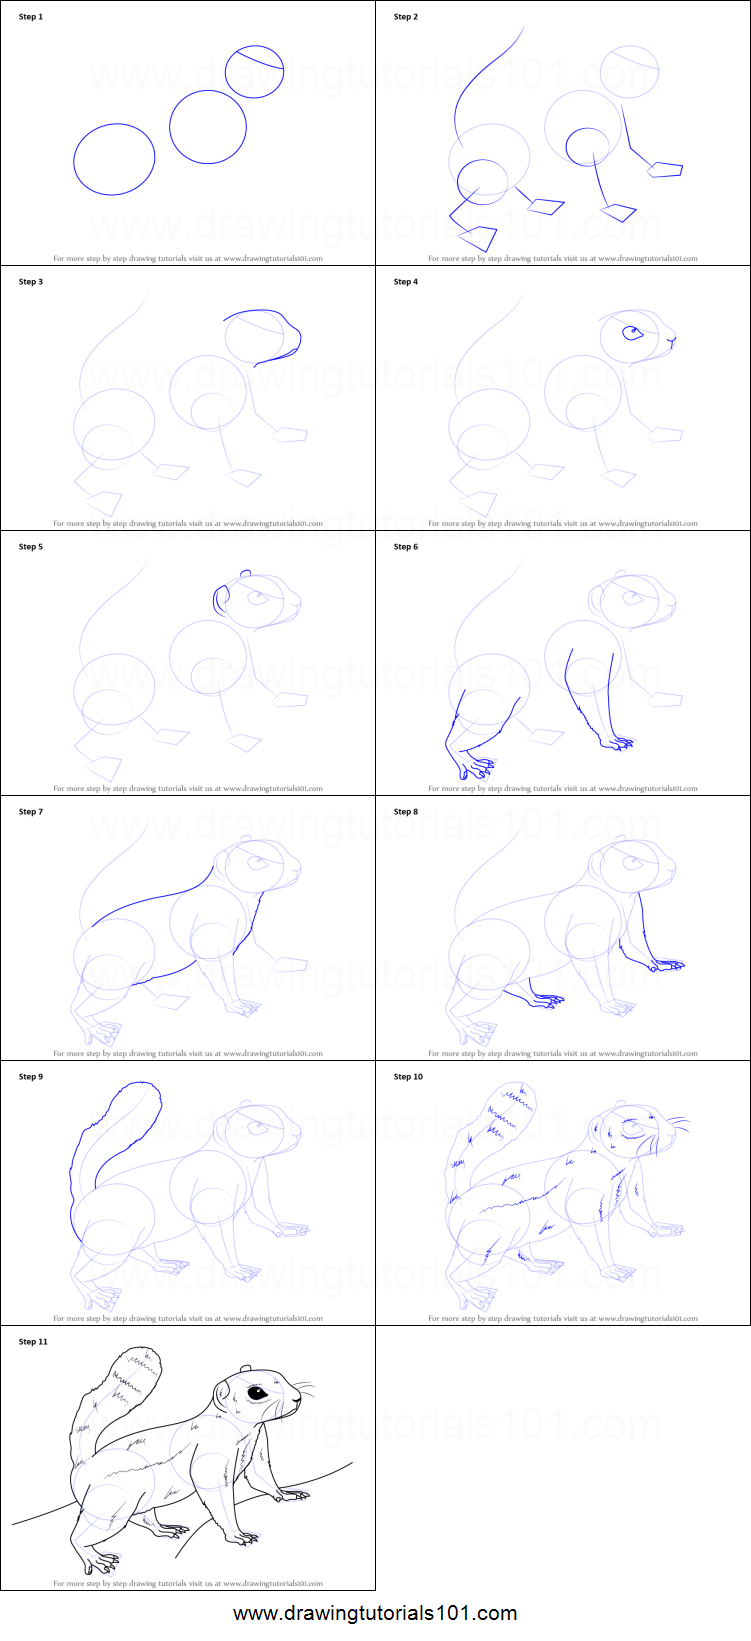 How to Draw an Antelope squirrel printable step by step drawing